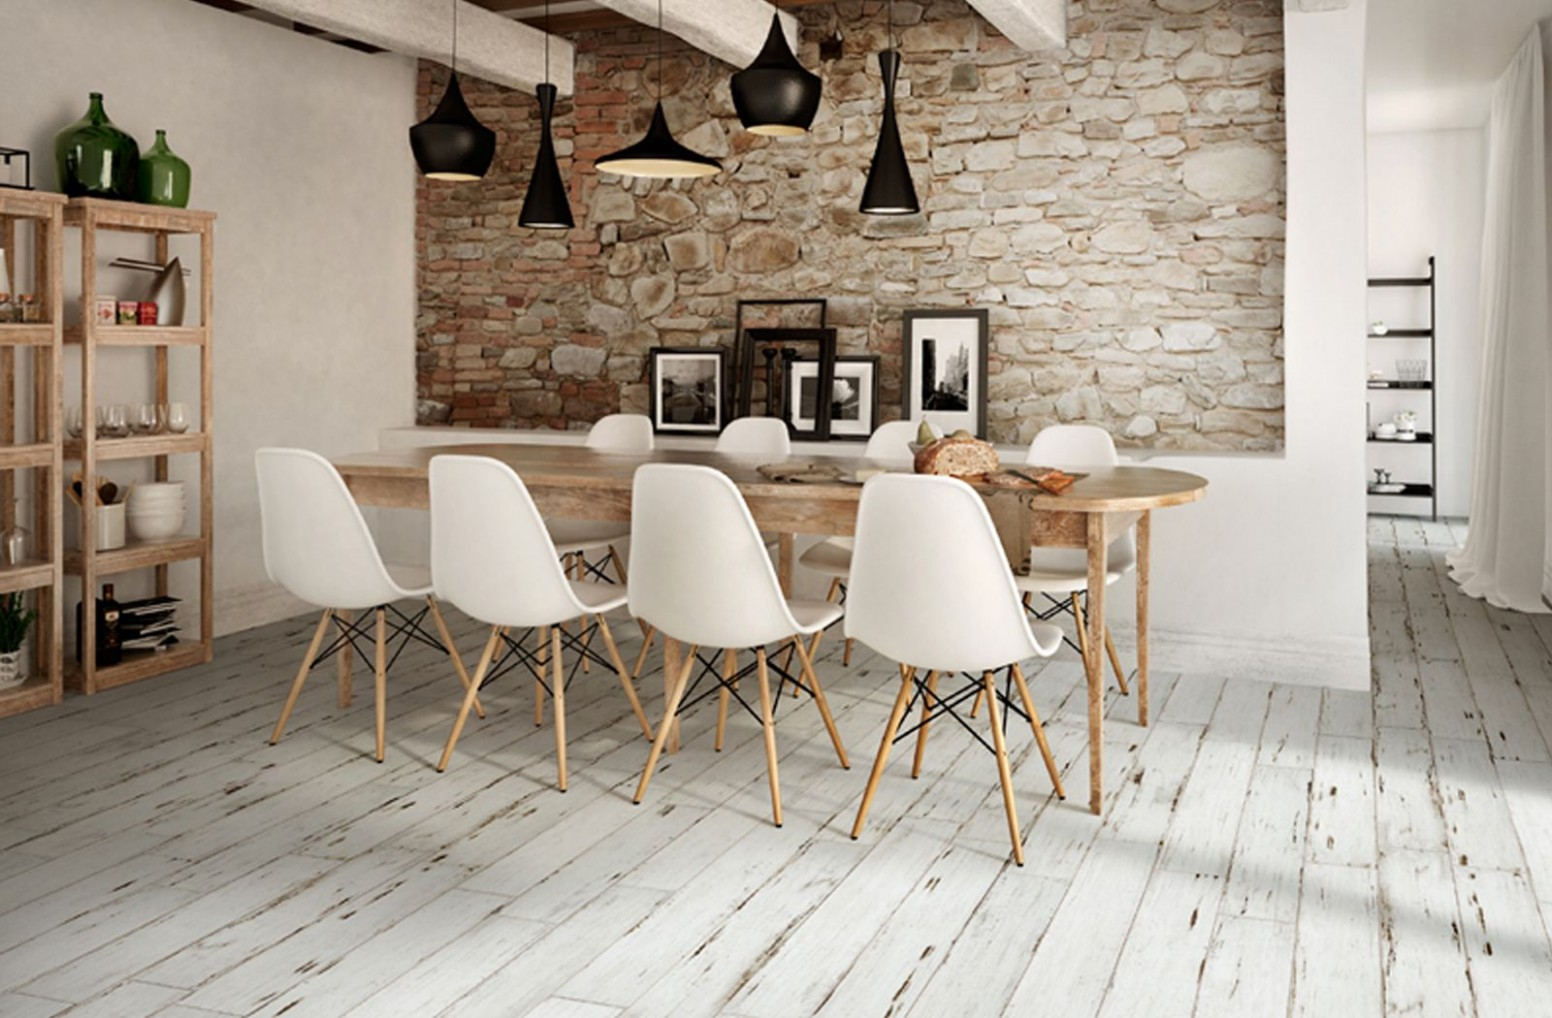 Modern country rustic vibe at dining space with Painted floor  - Dining Room Ideas Tile Floor